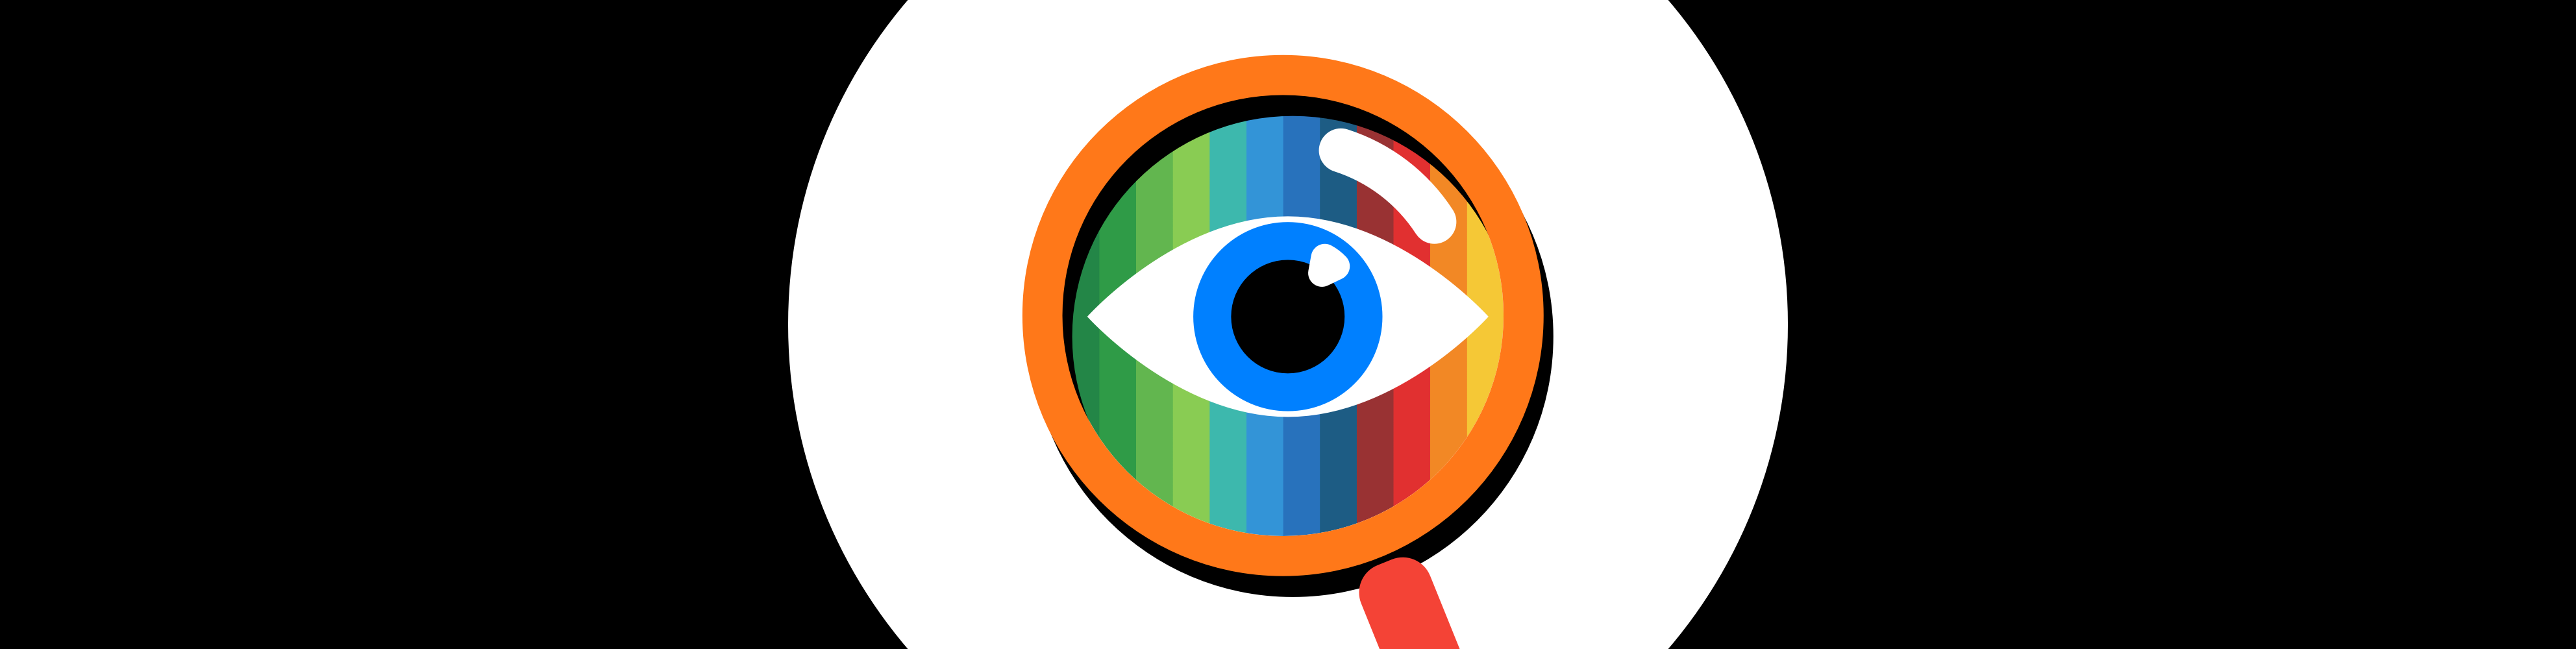 Illustrated magnifying glass over a rainbow eye